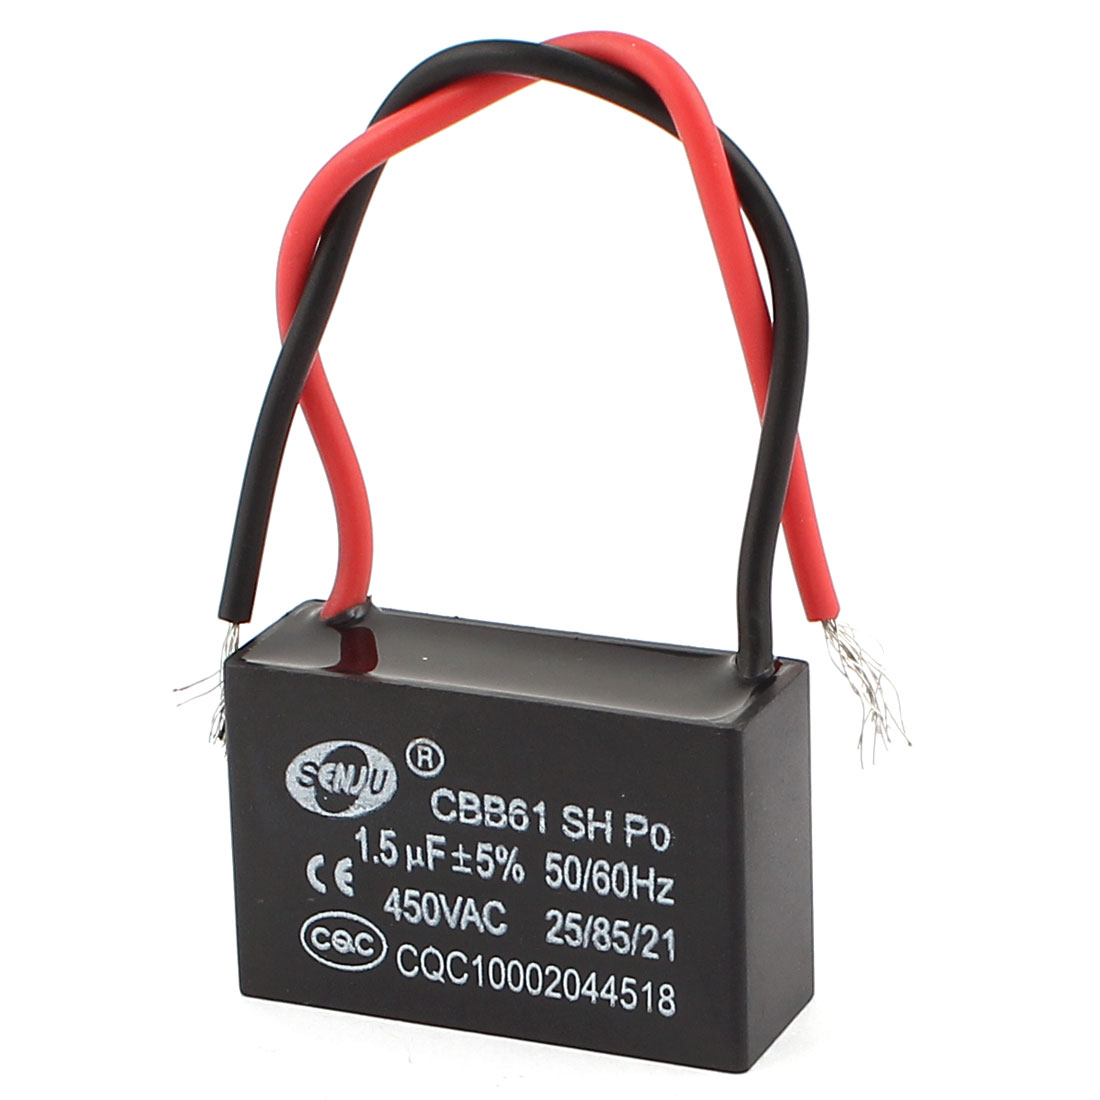 AC 450V 1.5uF 5% Tolerance 2-Wire Polypropylene Film Motor Run Capacitor